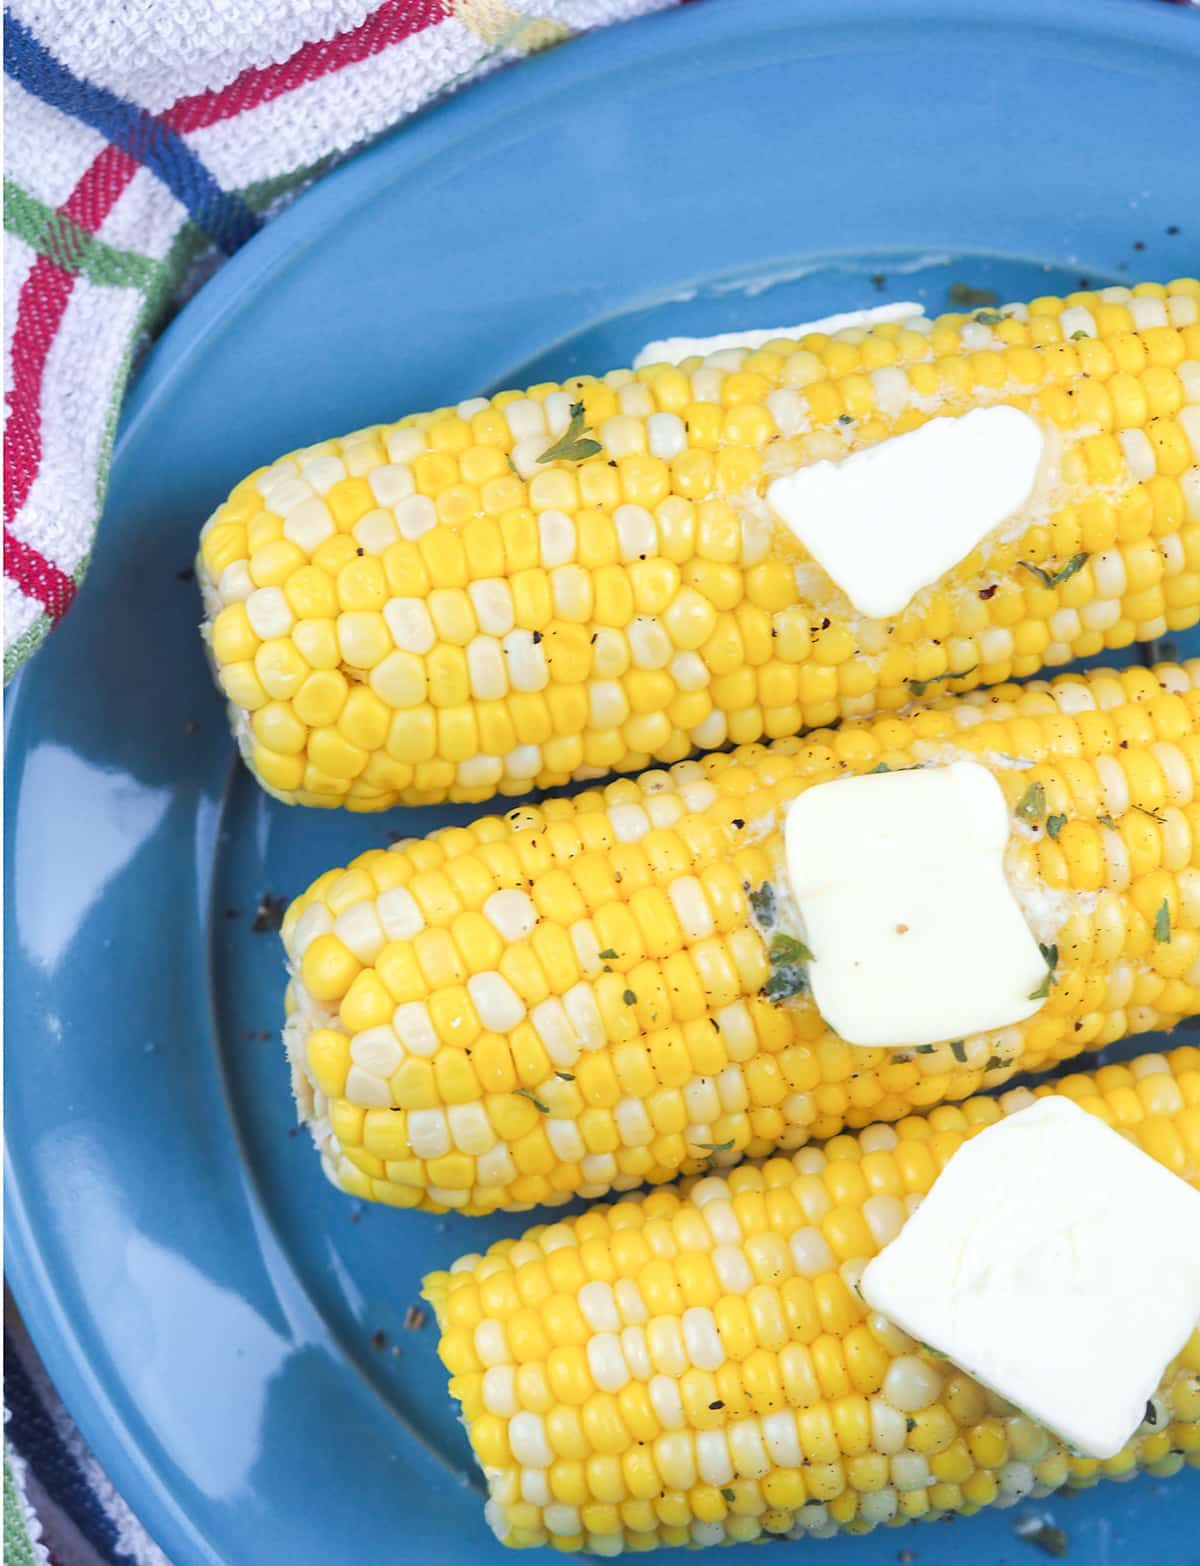 close  up view of three ears of corn on the cob on blue plate with butter pats and sprinkled parsley